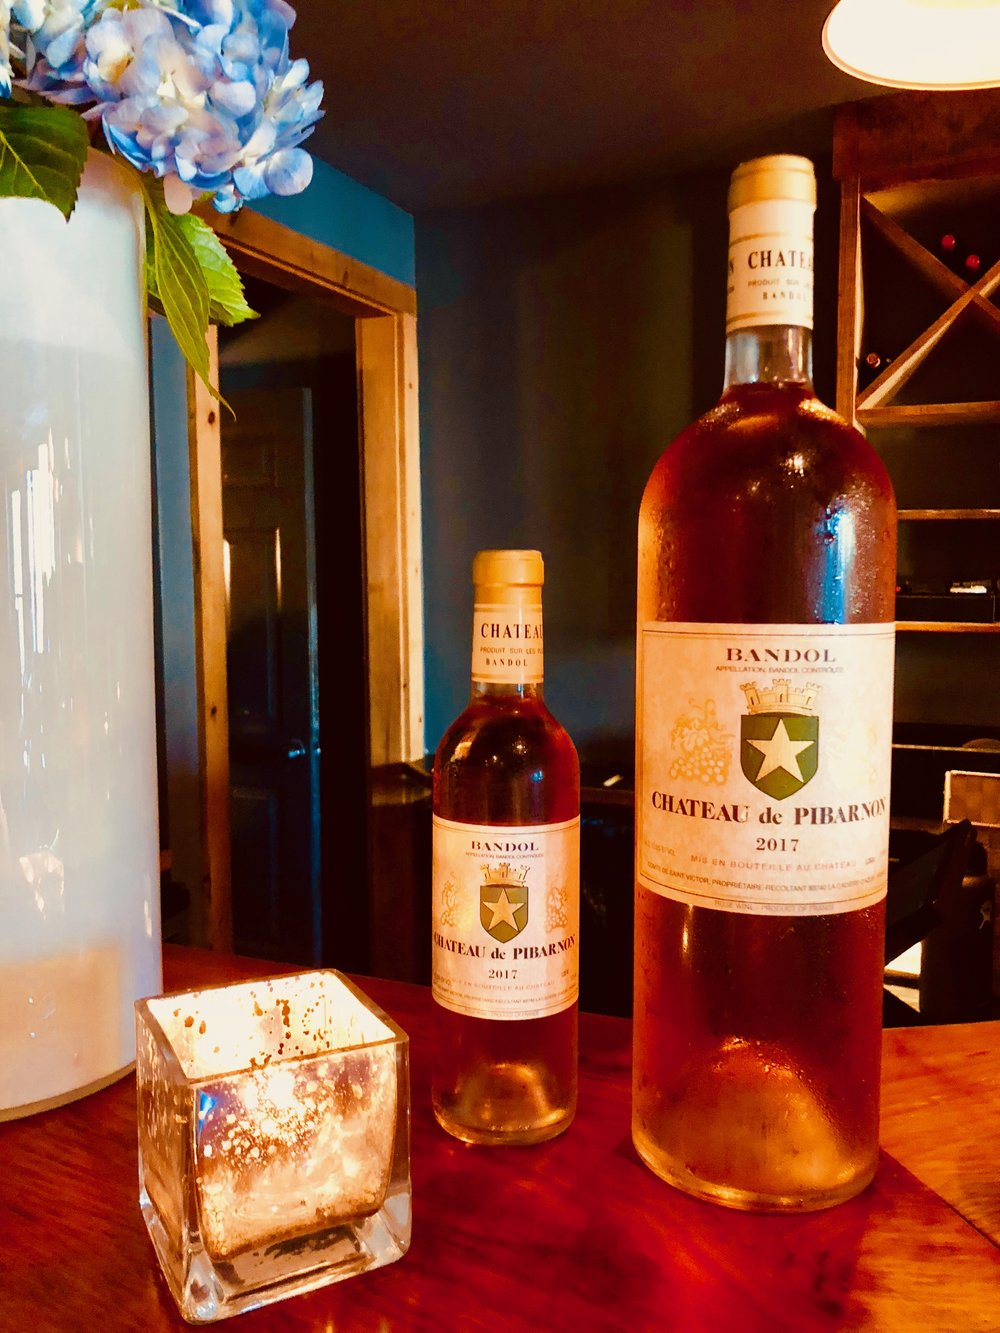 New to our menu, a sensational premium rosé of Cinsault and Mourvèdre, Château de Pibarnon, from Provence's  Bandol  region, is lush and creamy with strong notes of strawberry.  Available in half bottles and magnums while supplies last.